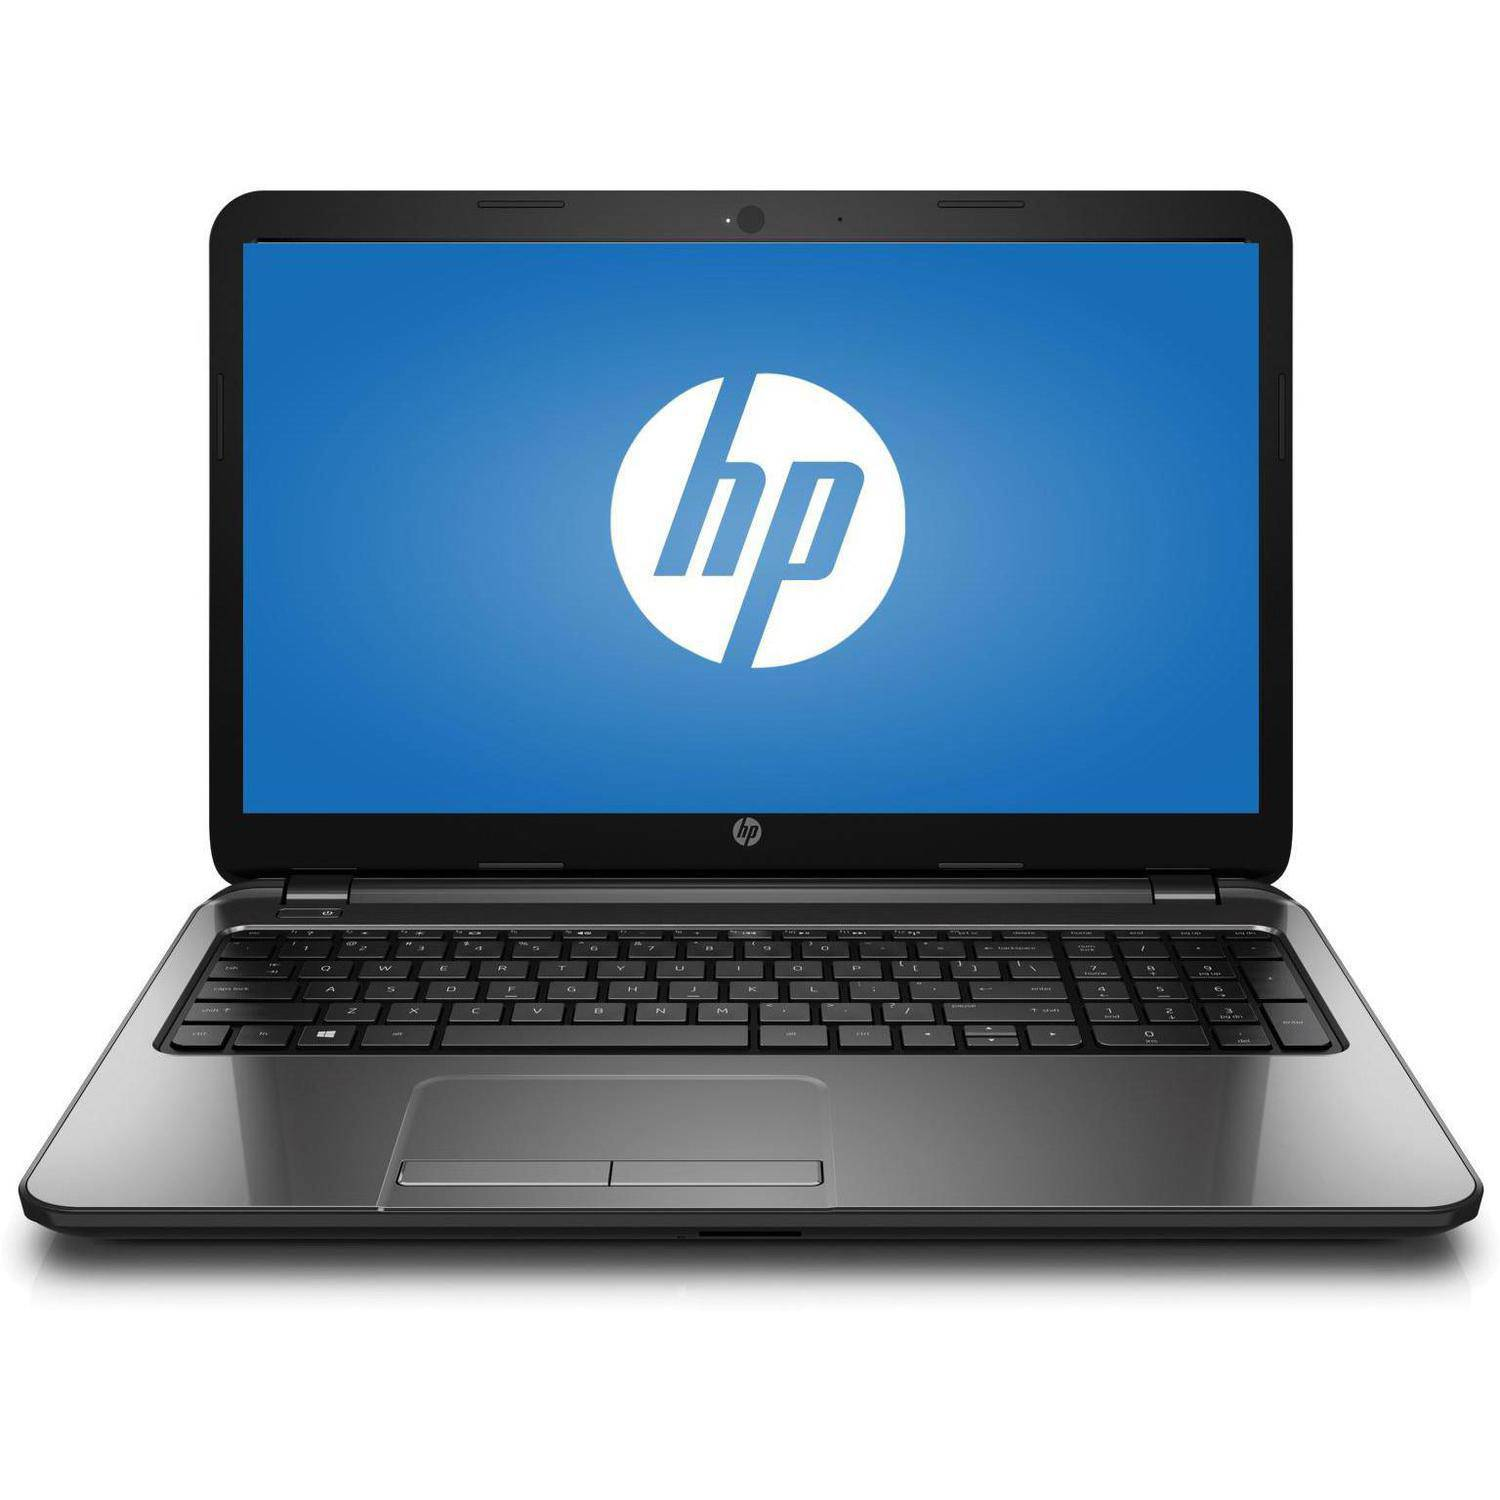 Hewlett Packard HP Charcoal 15.6 15 - g019wm Laptop PC with AMD E1 - 2100 Accelerated Processor, 4GB Memory, 500GB Hard Drive and Windows 8.1 (Free Windows 10 Upgrade before July 29, 2016)